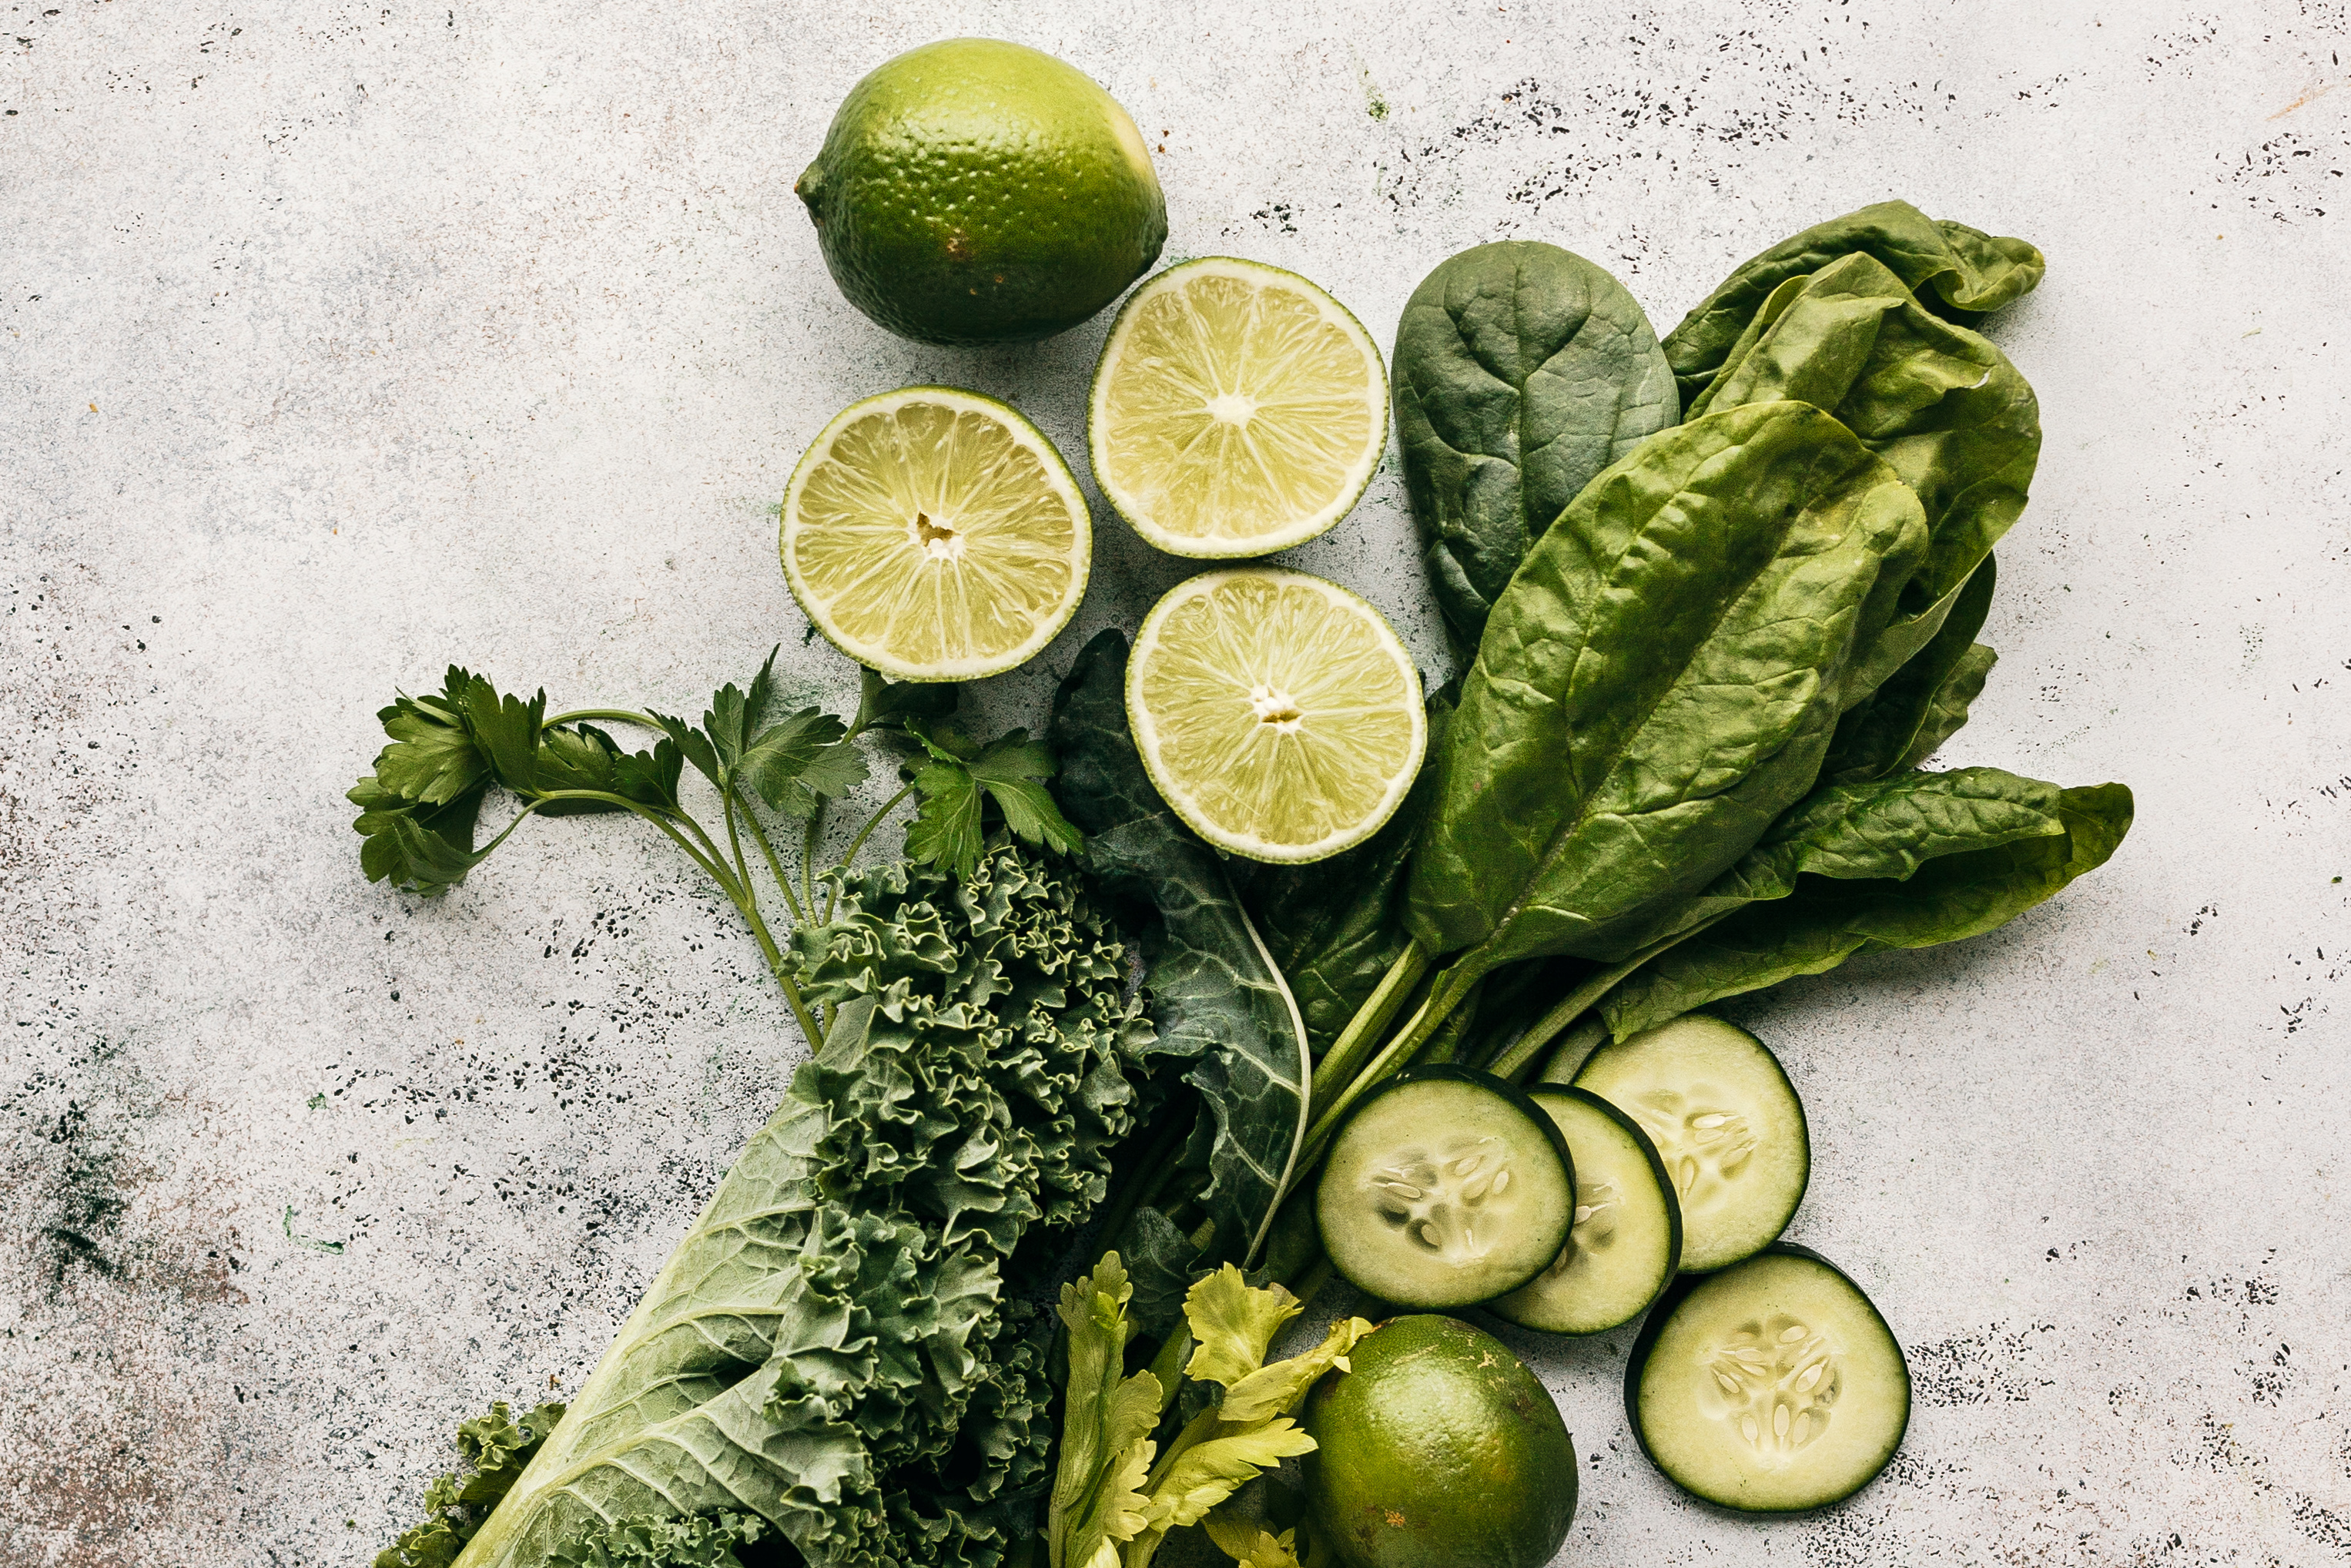 The key to a nutritious juice is including raw foods, fresh fruits, and some leafy greens.